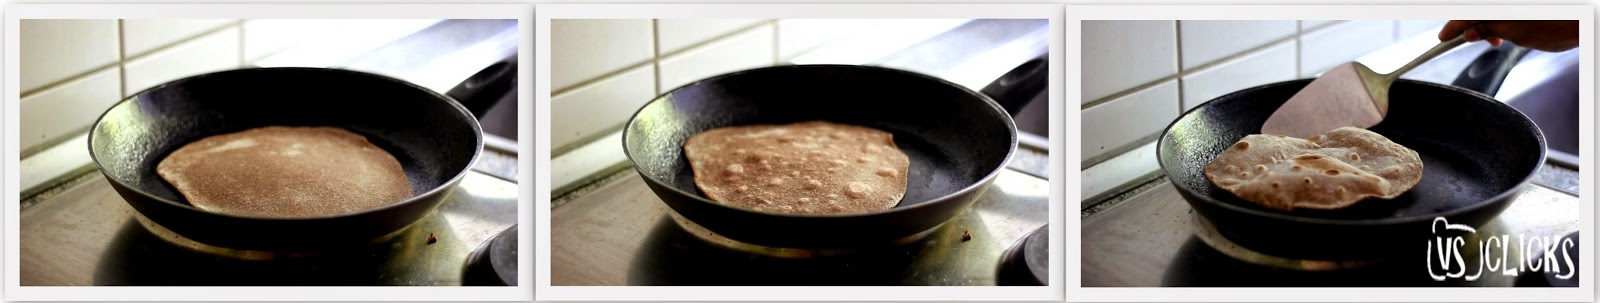 Ragi Chapathi Indian Ragi Flatbread Instructions